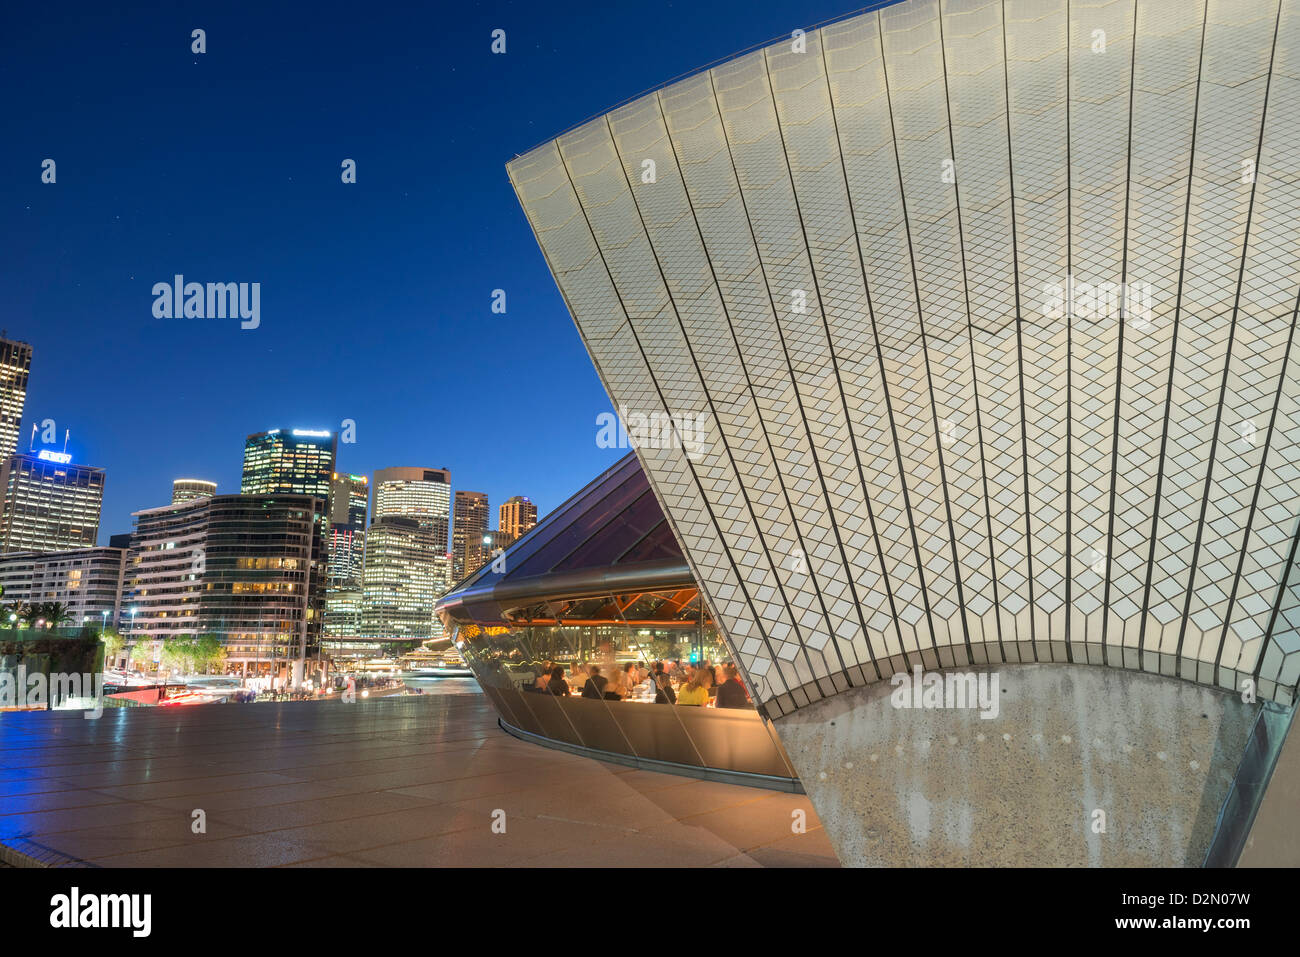 Opera House, UNESCO World Heritage Site, Sydney, New South Wales, Australia, Pacific - Stock Image